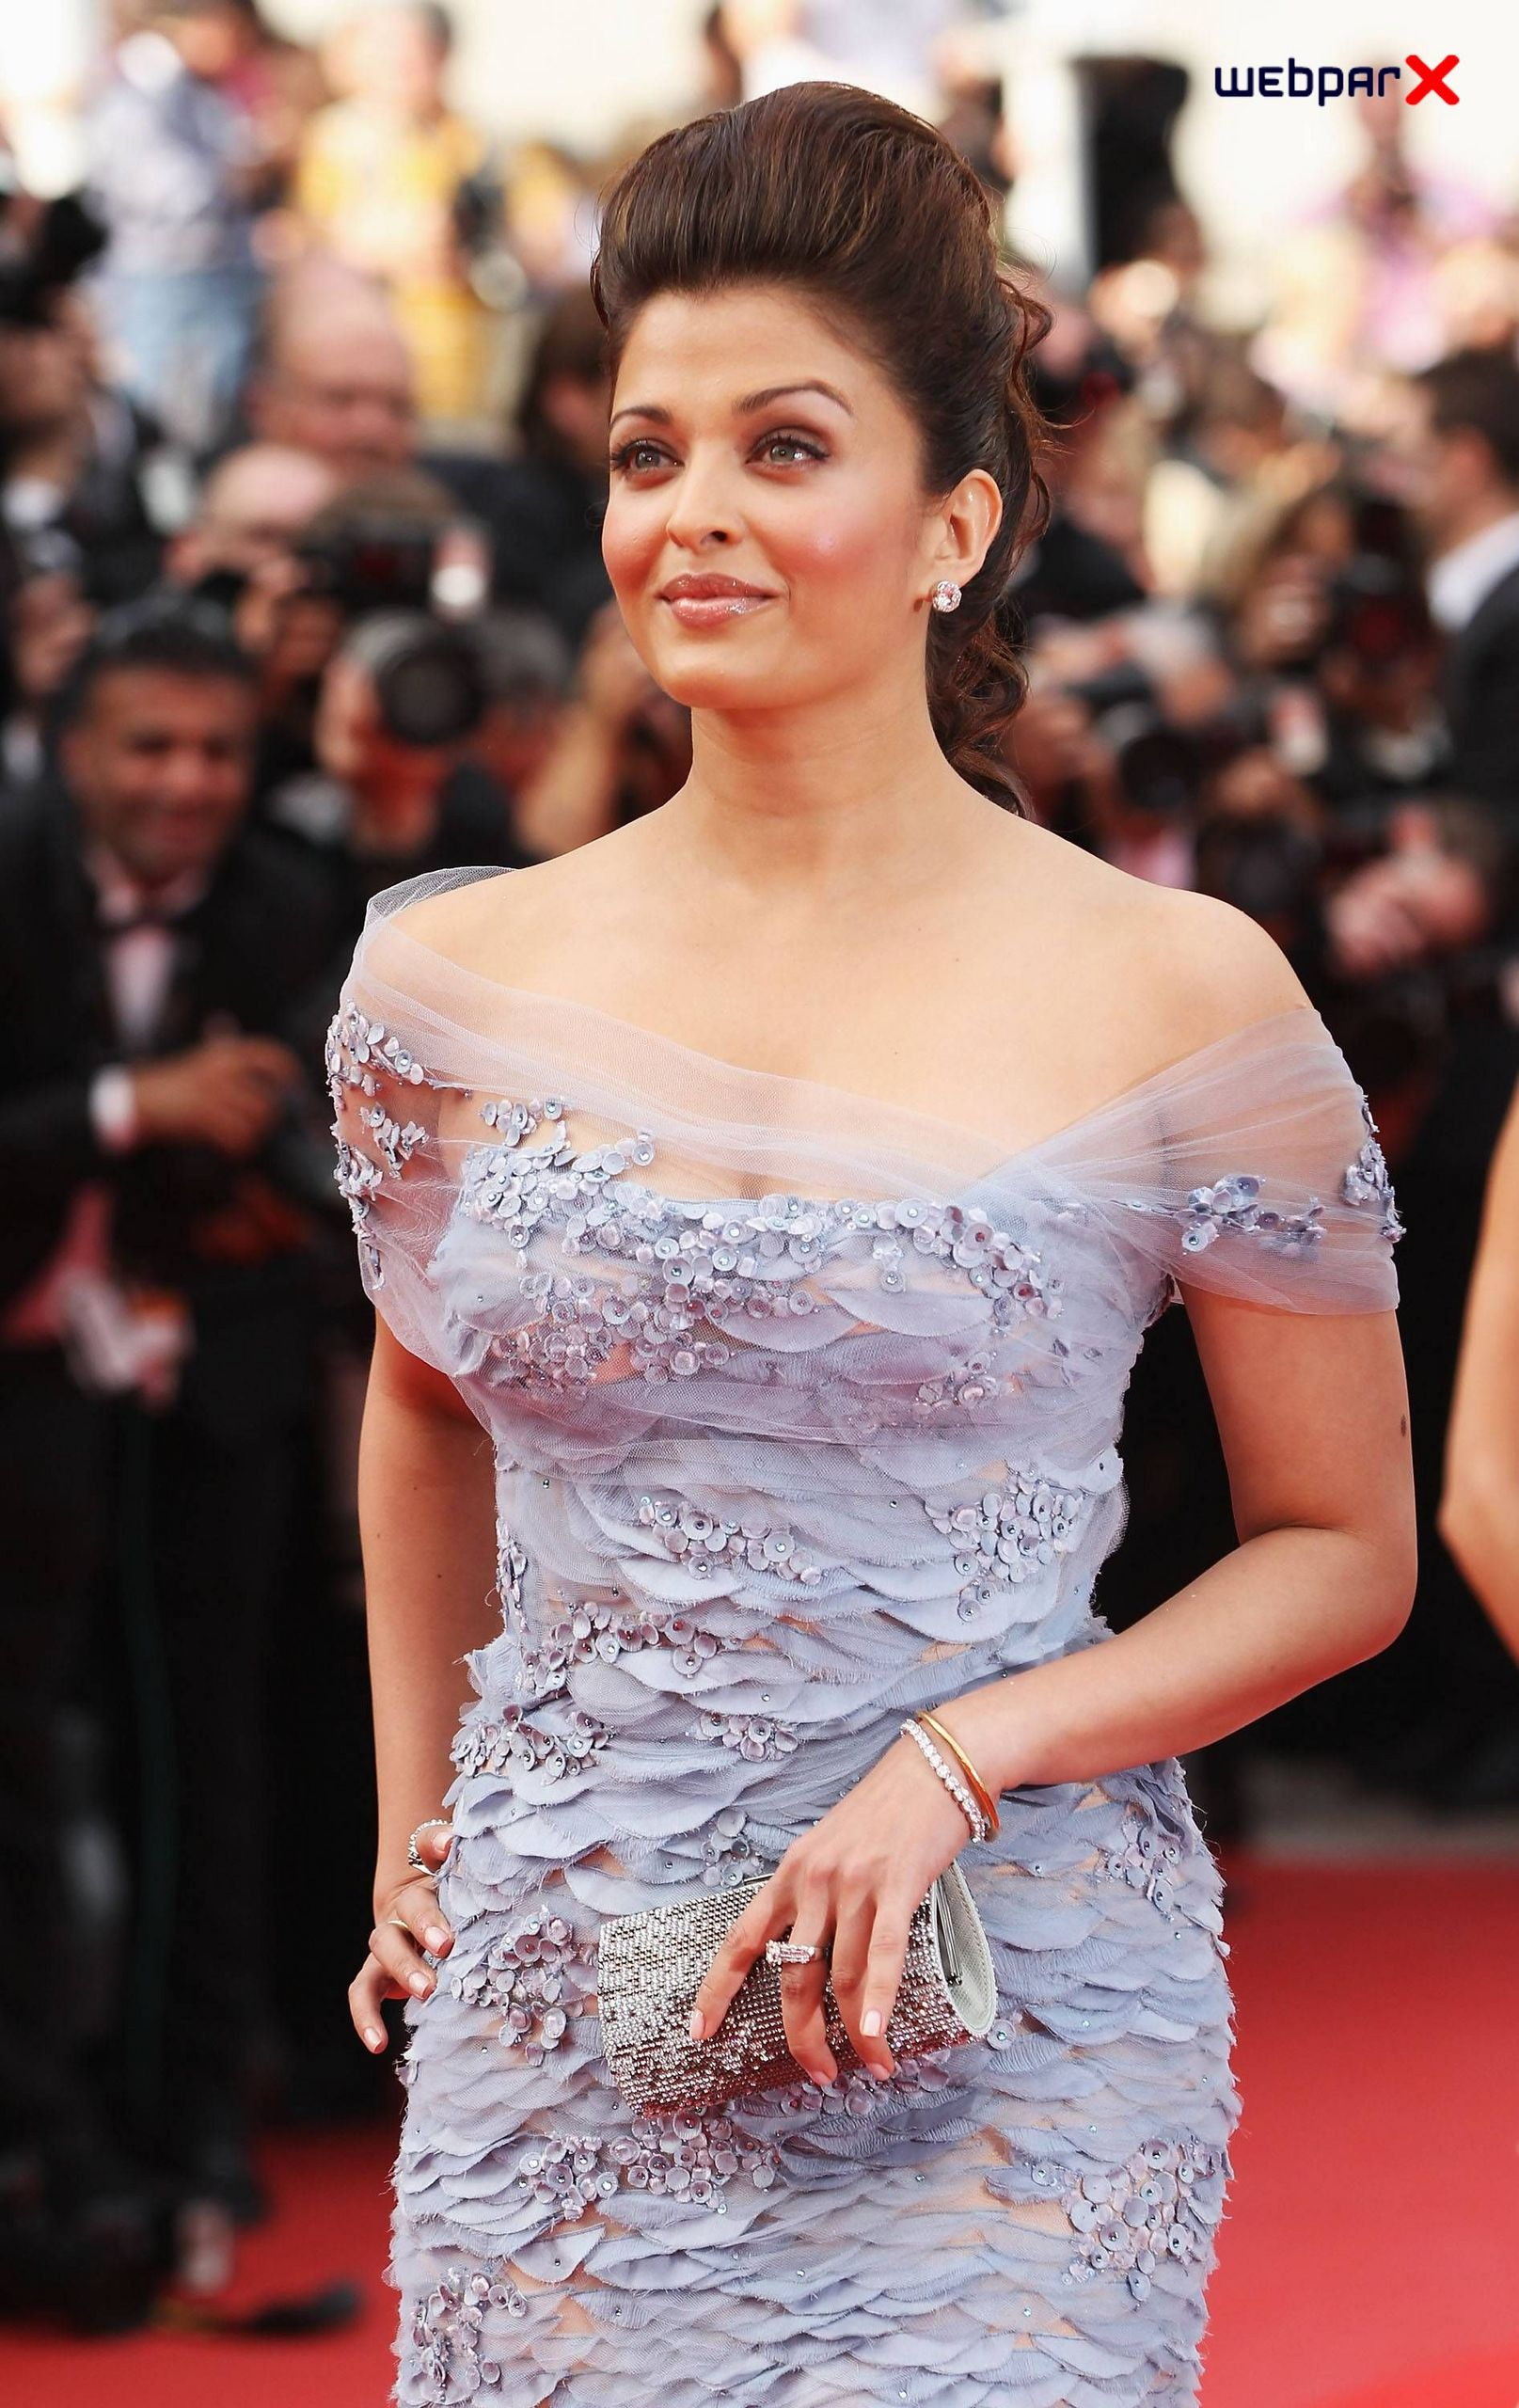 Aishwarya Rai Full HD Images - World of Heroines